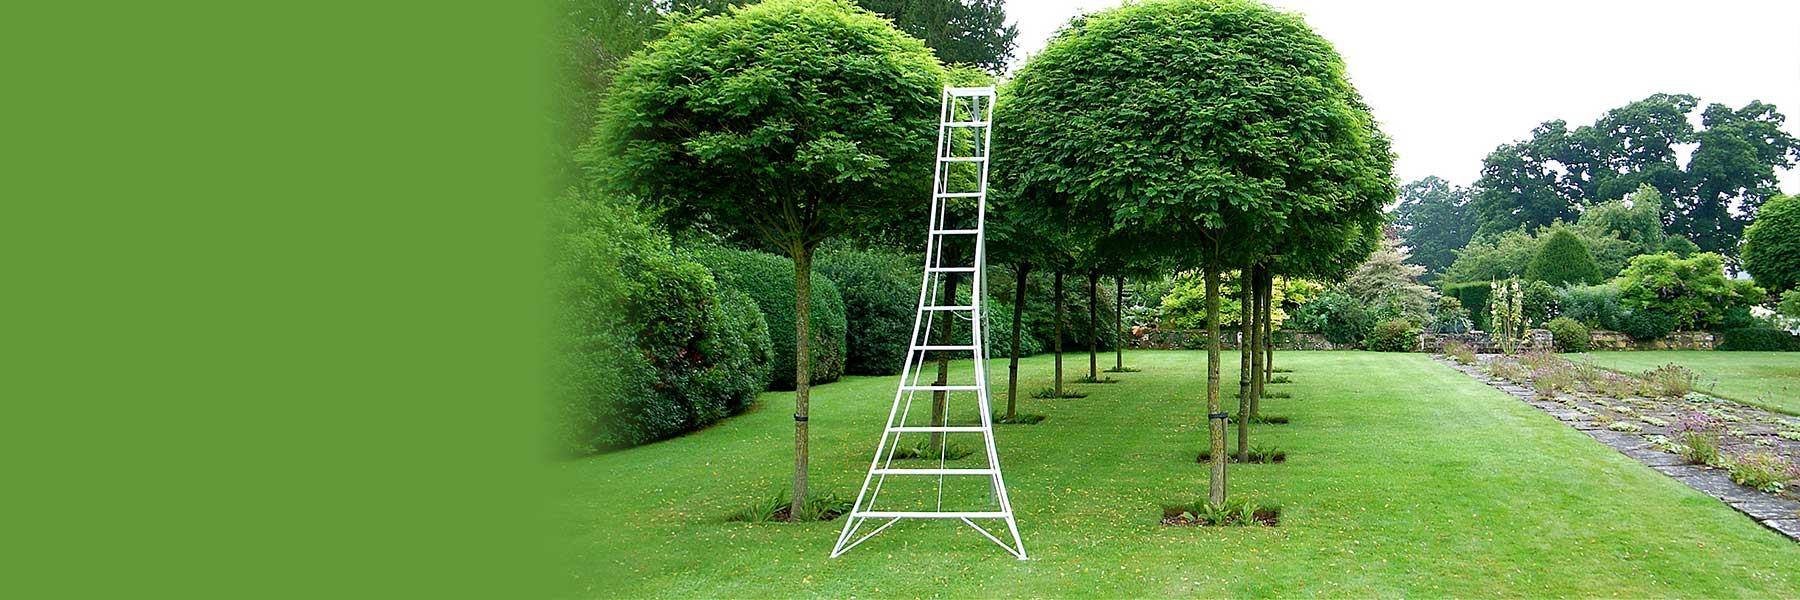 Tripod Ladder - 6 Feet